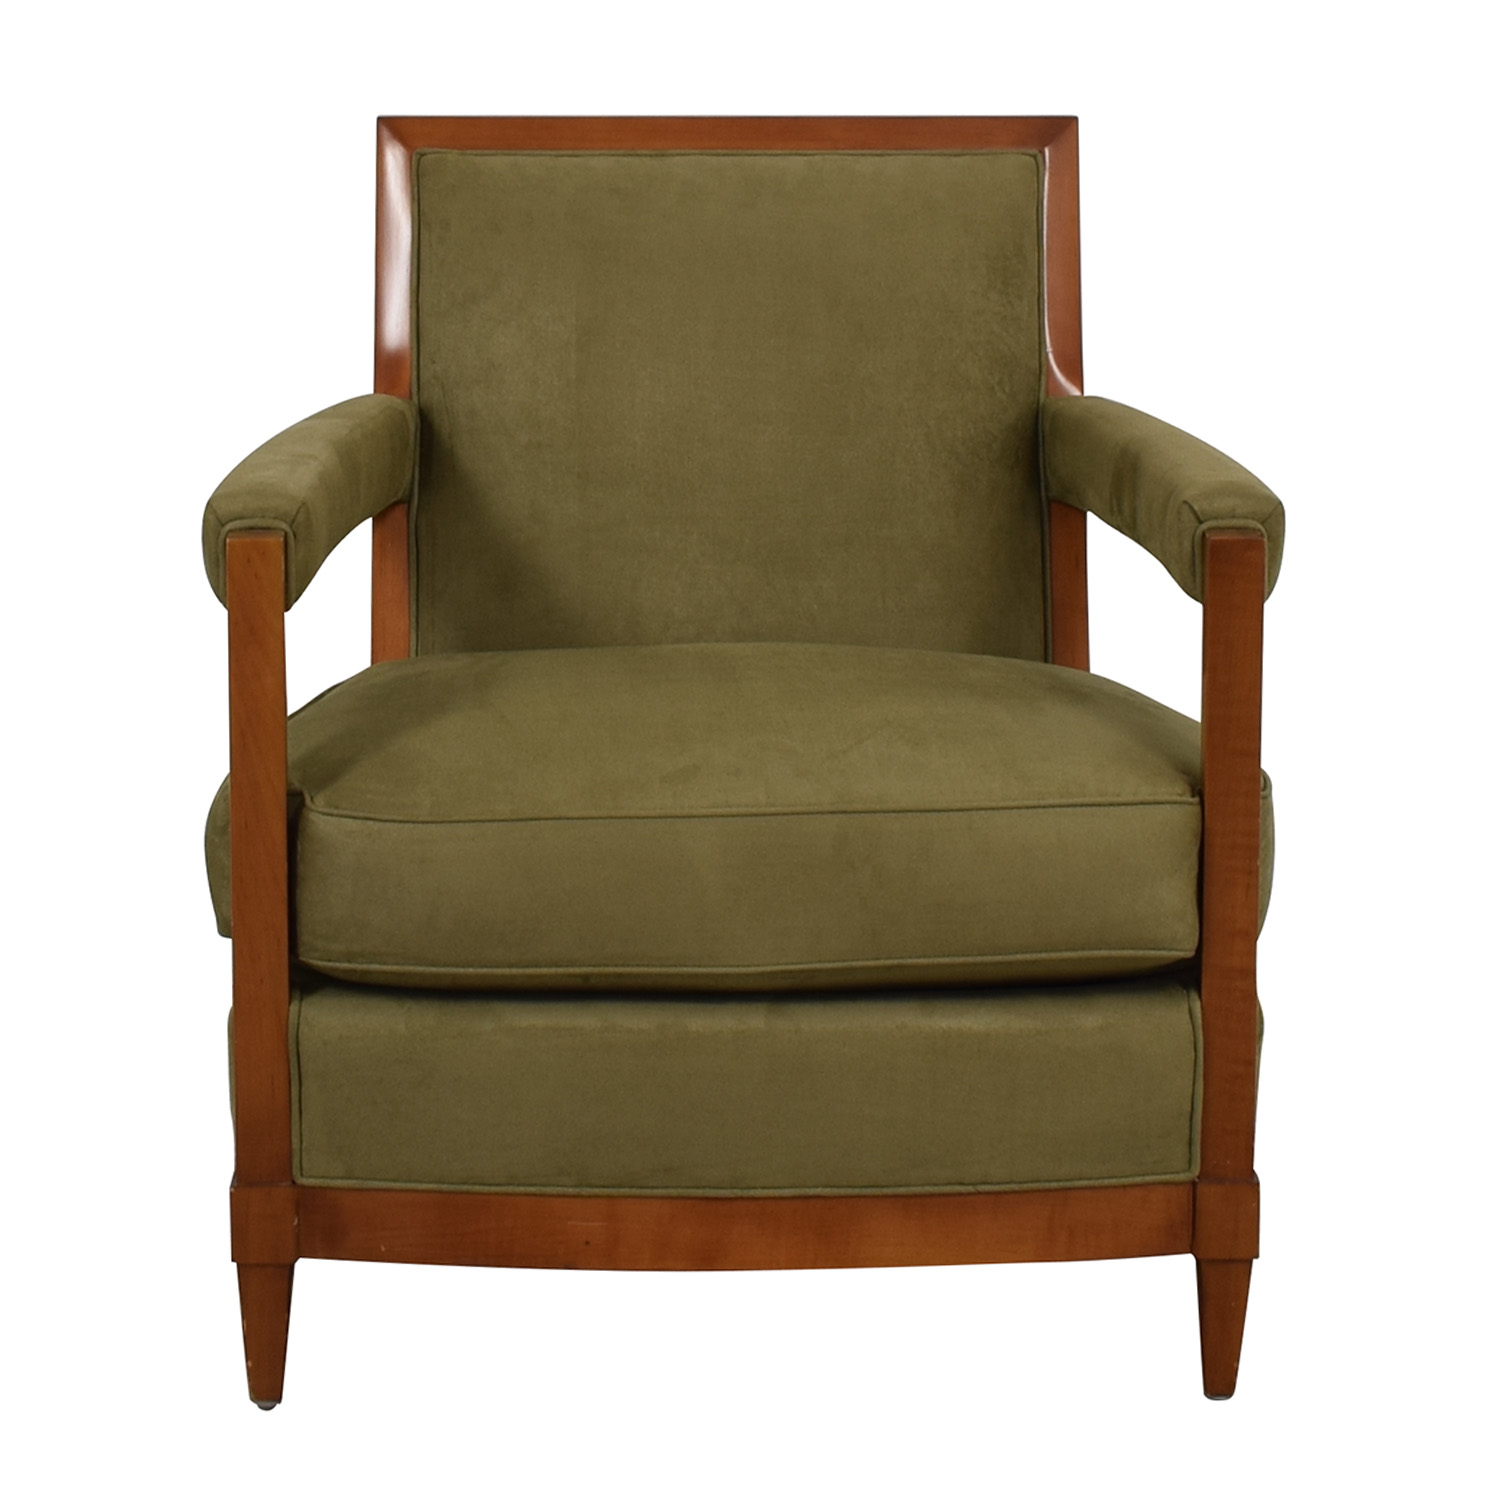 Furniture Masters Furniture Masters Sage Green Micro-Suede Accent Chair discount